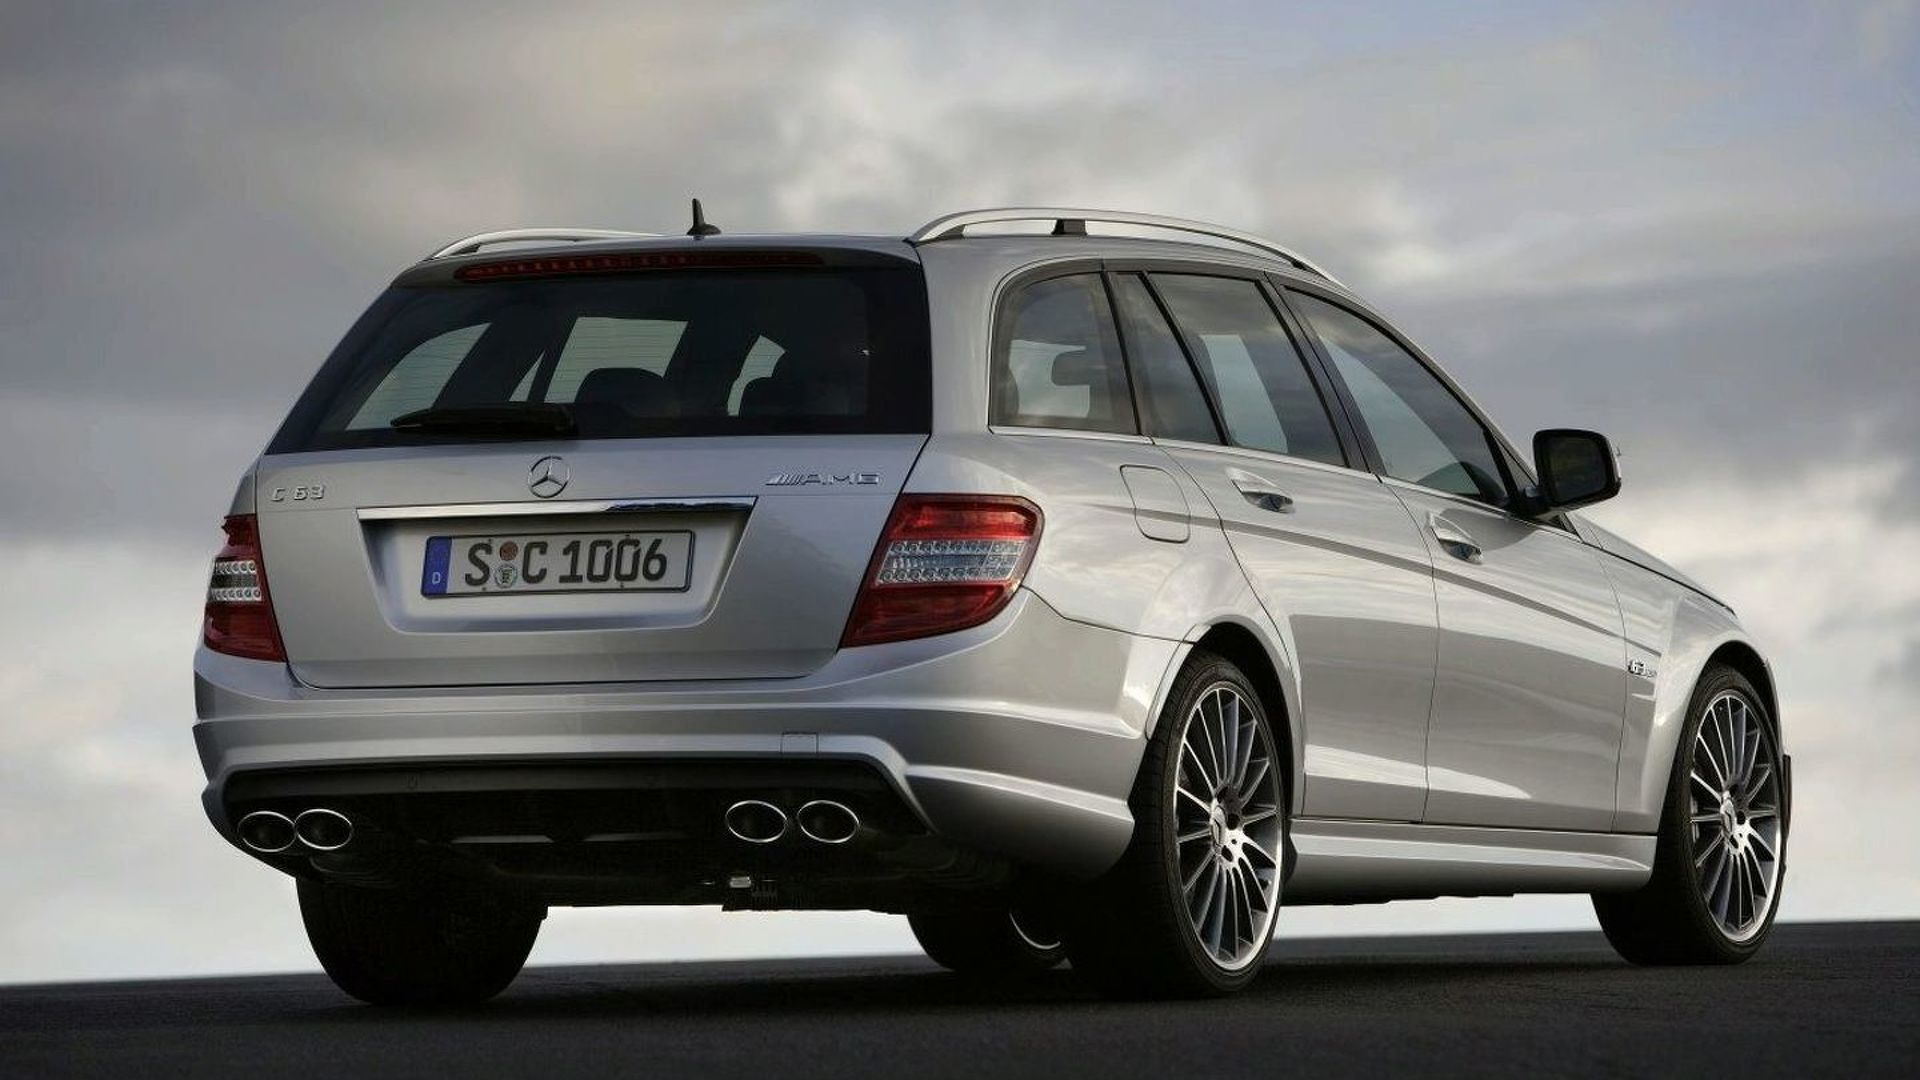 Mercedes c 63 amg pricing for uk for Mercedes benz c amg price